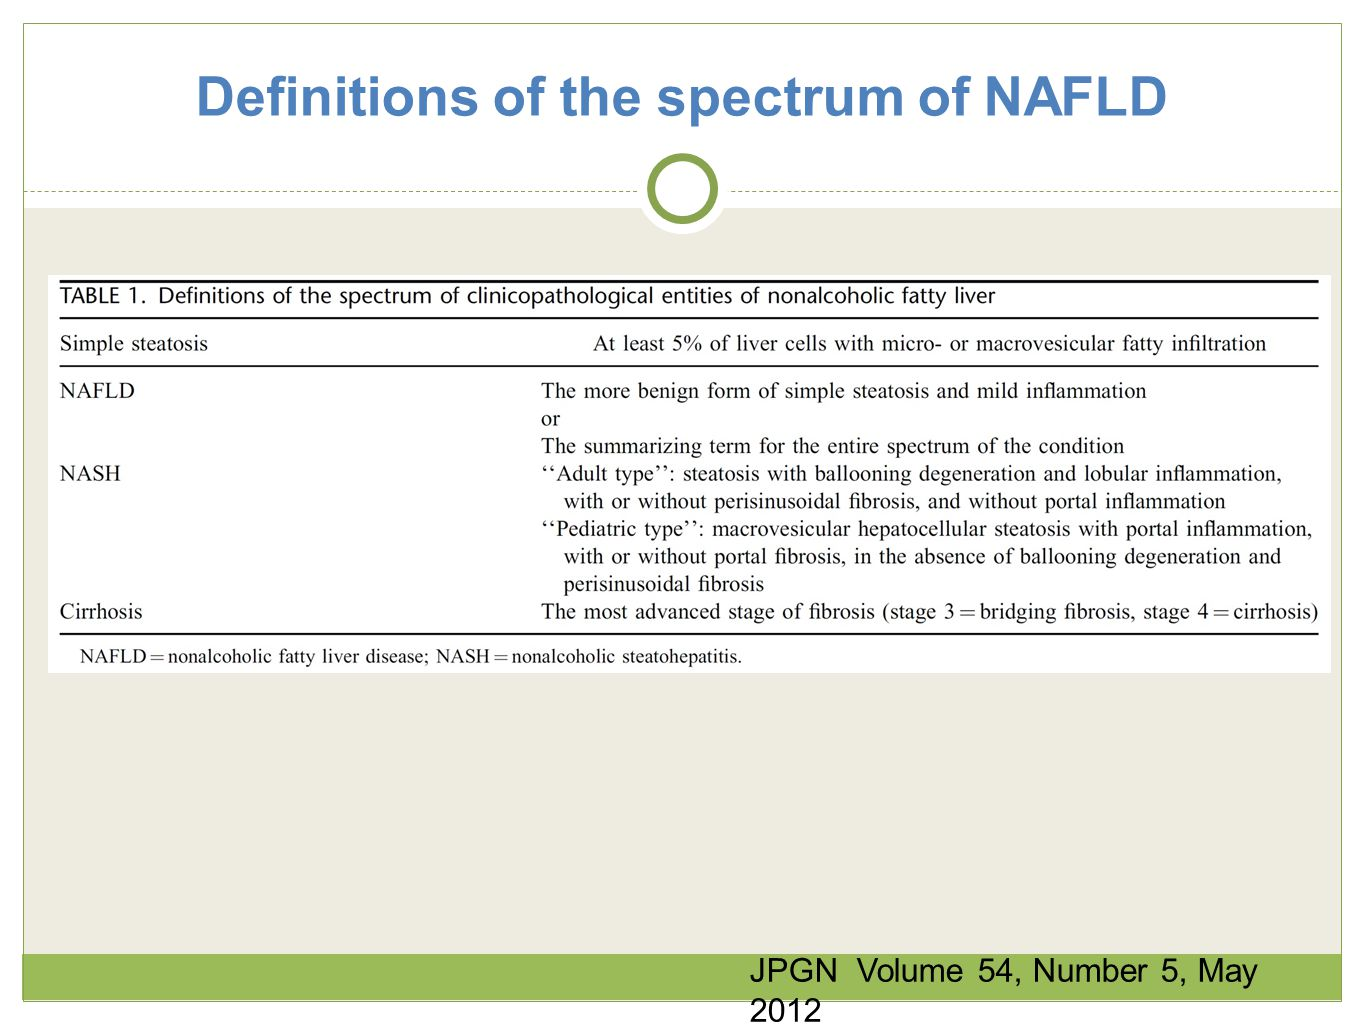 Definitions of the spectrum of NAFLD